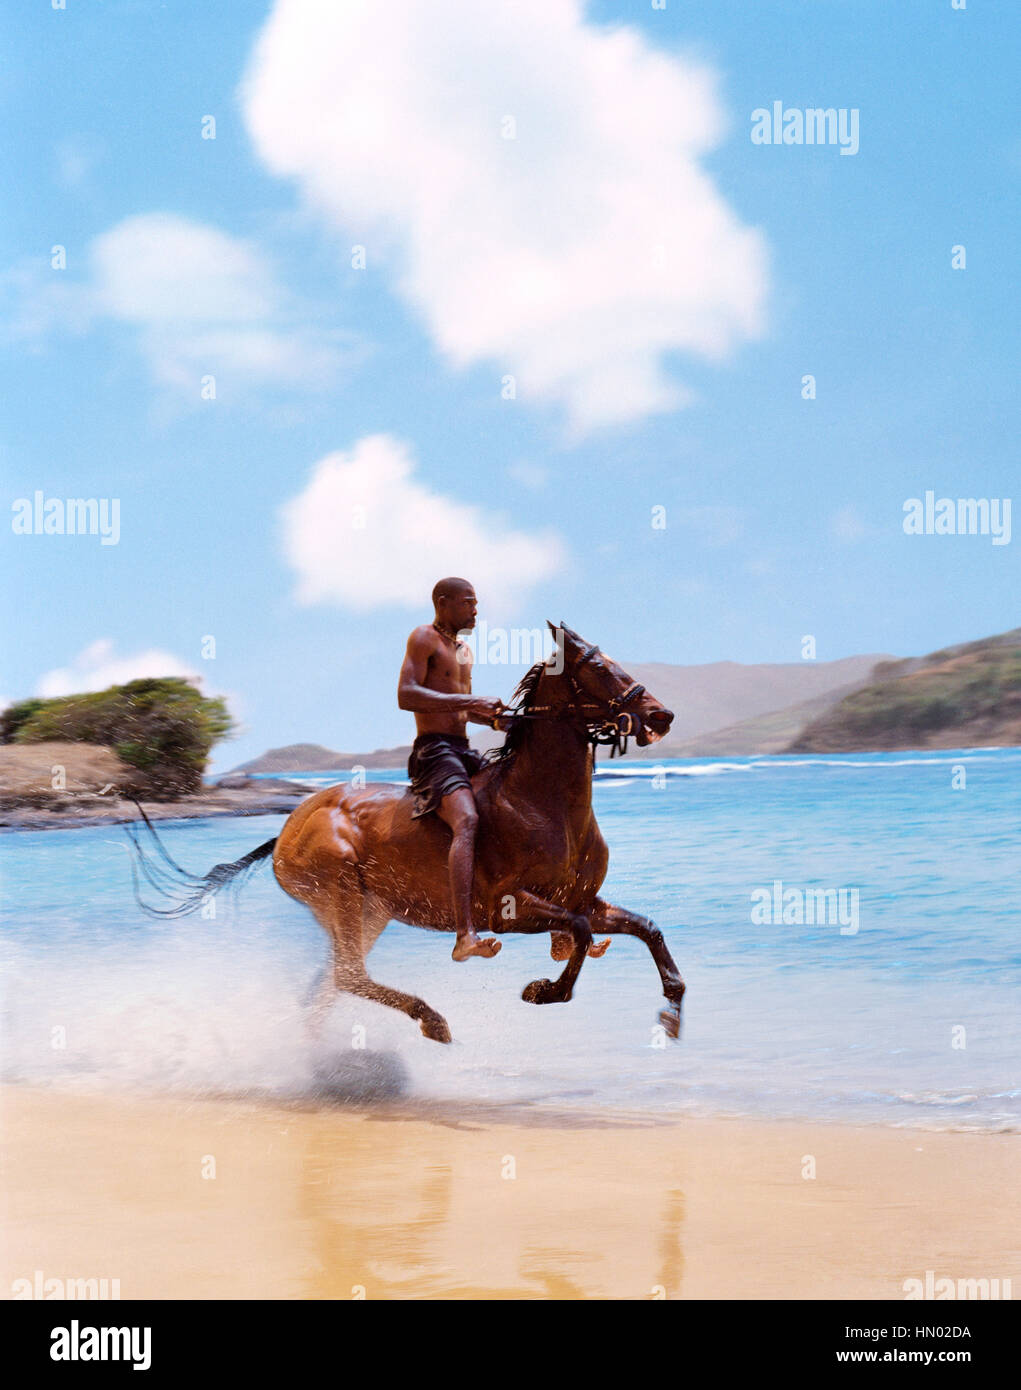 International Pony Club co-owner Alvin Phillipp rides a horse down Cas-En-Bas Beach. St. Lucia. - Stock Image